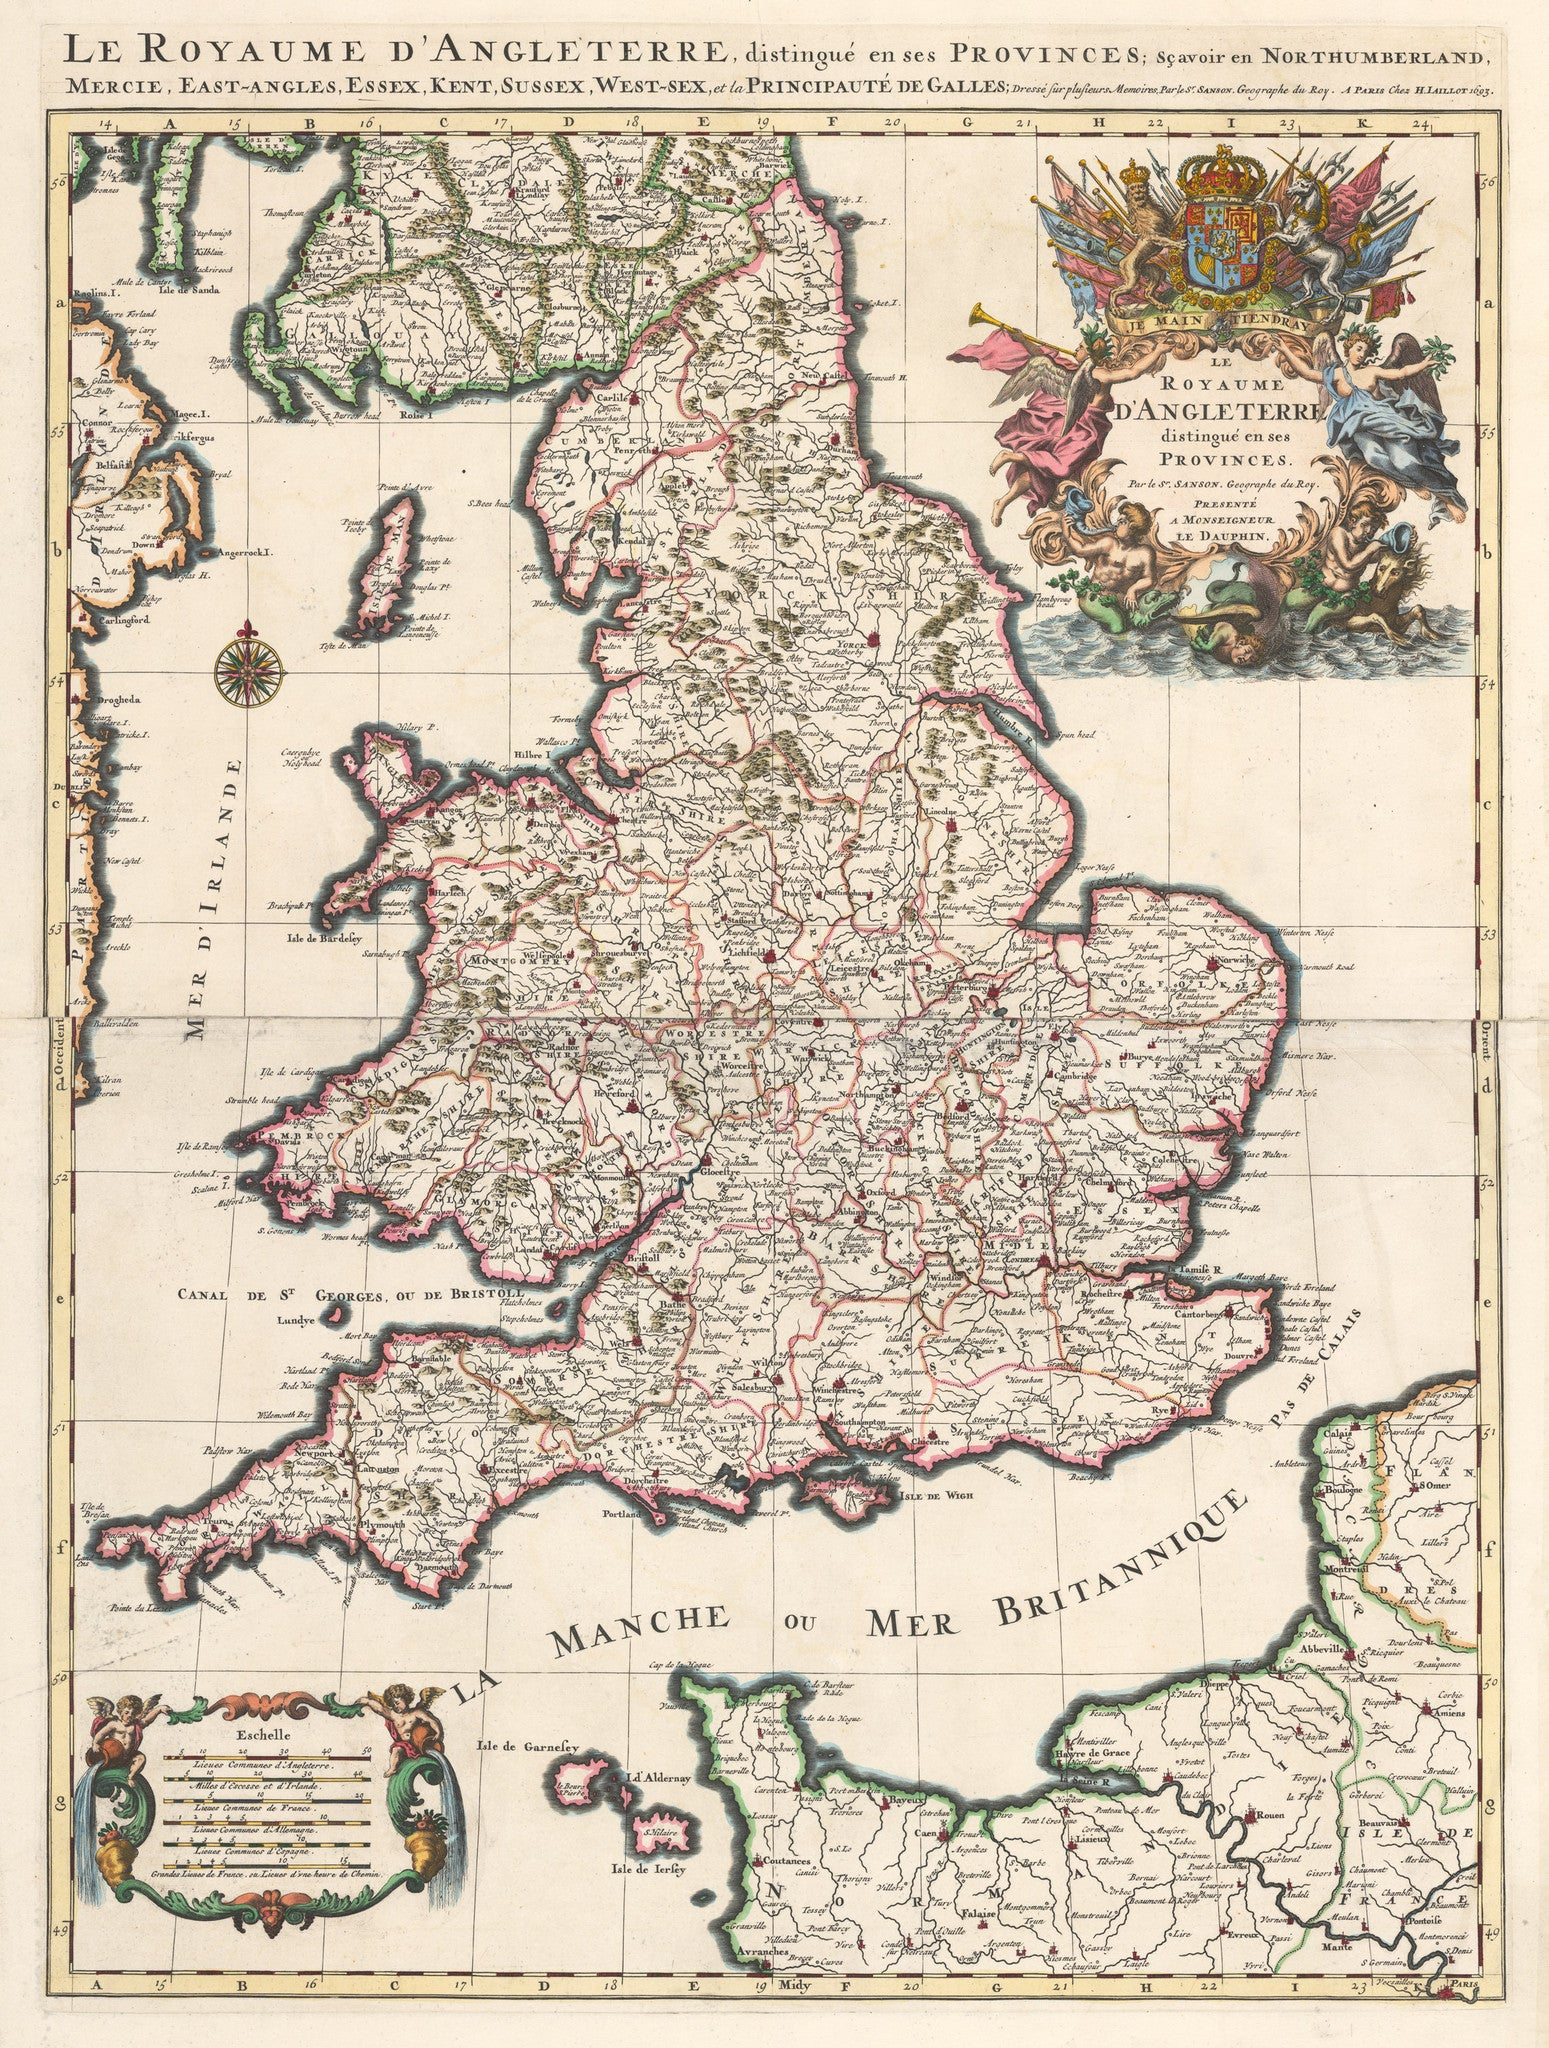 Le Royaume d'Angleterre, distingue enses Provinces; Scavoir en Northumberland, Mercie, East-Angles, Essex, Kent Sussex, West-sex, et la Principaute de Galles.